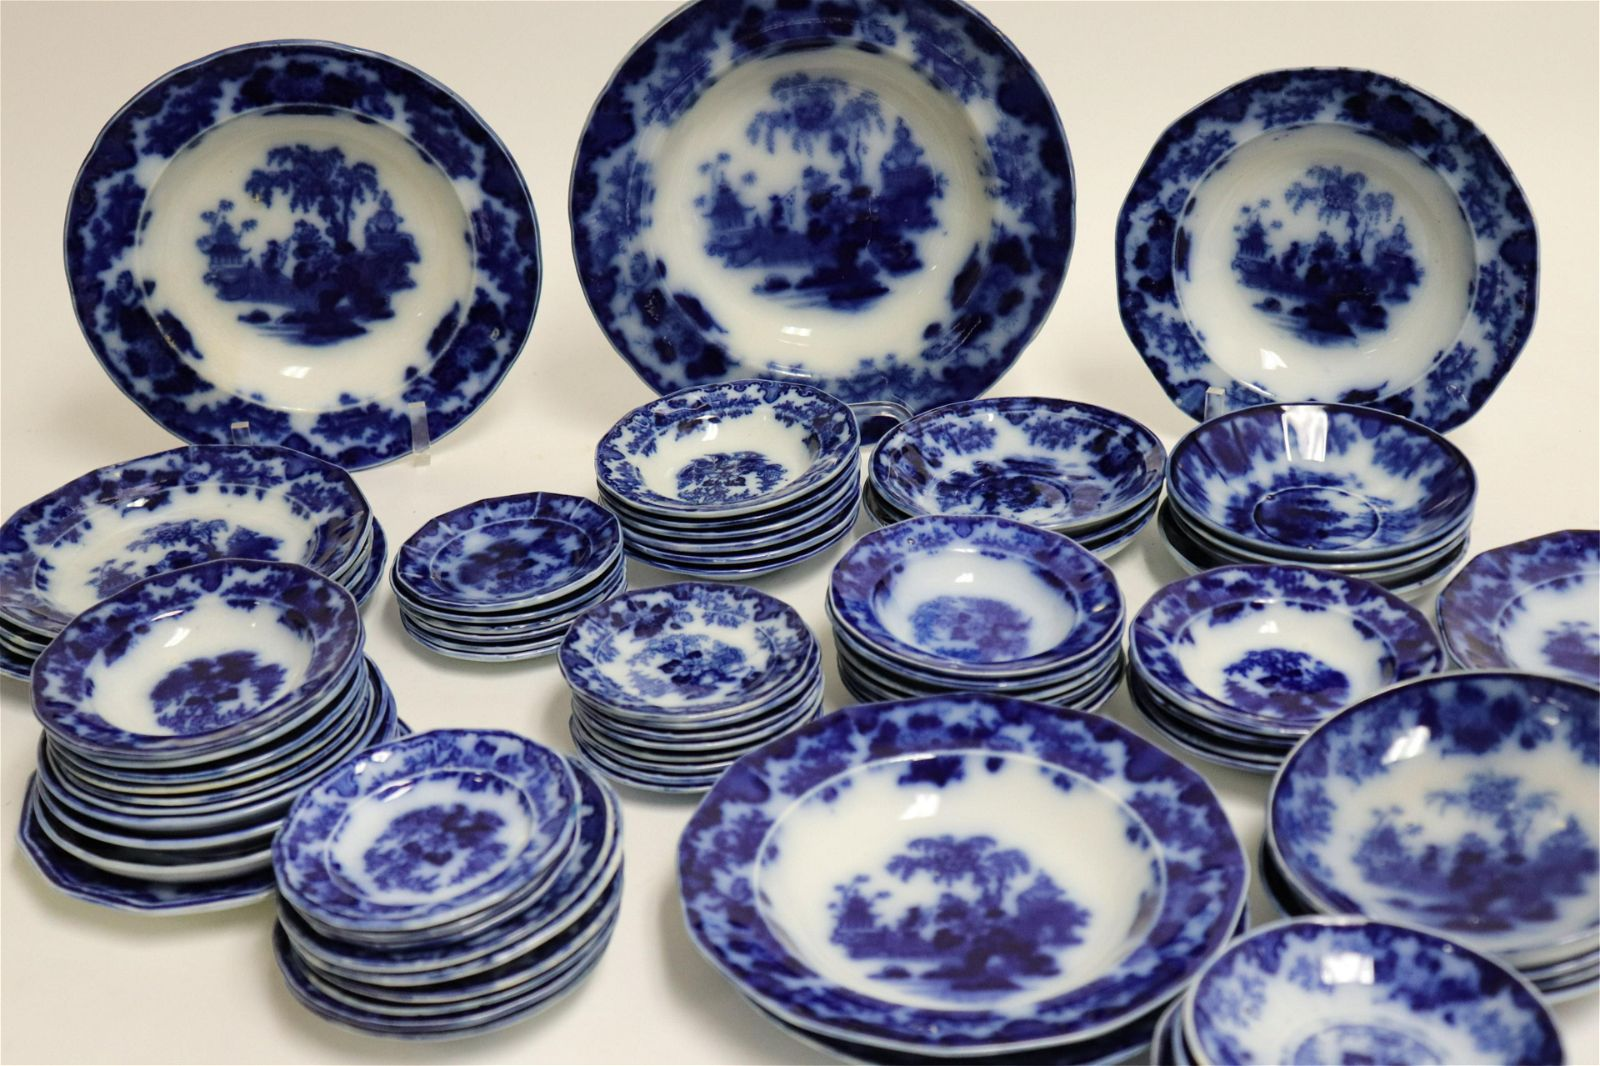 74 Flow Blue 'Scinde' Transferware Plates & Dishes